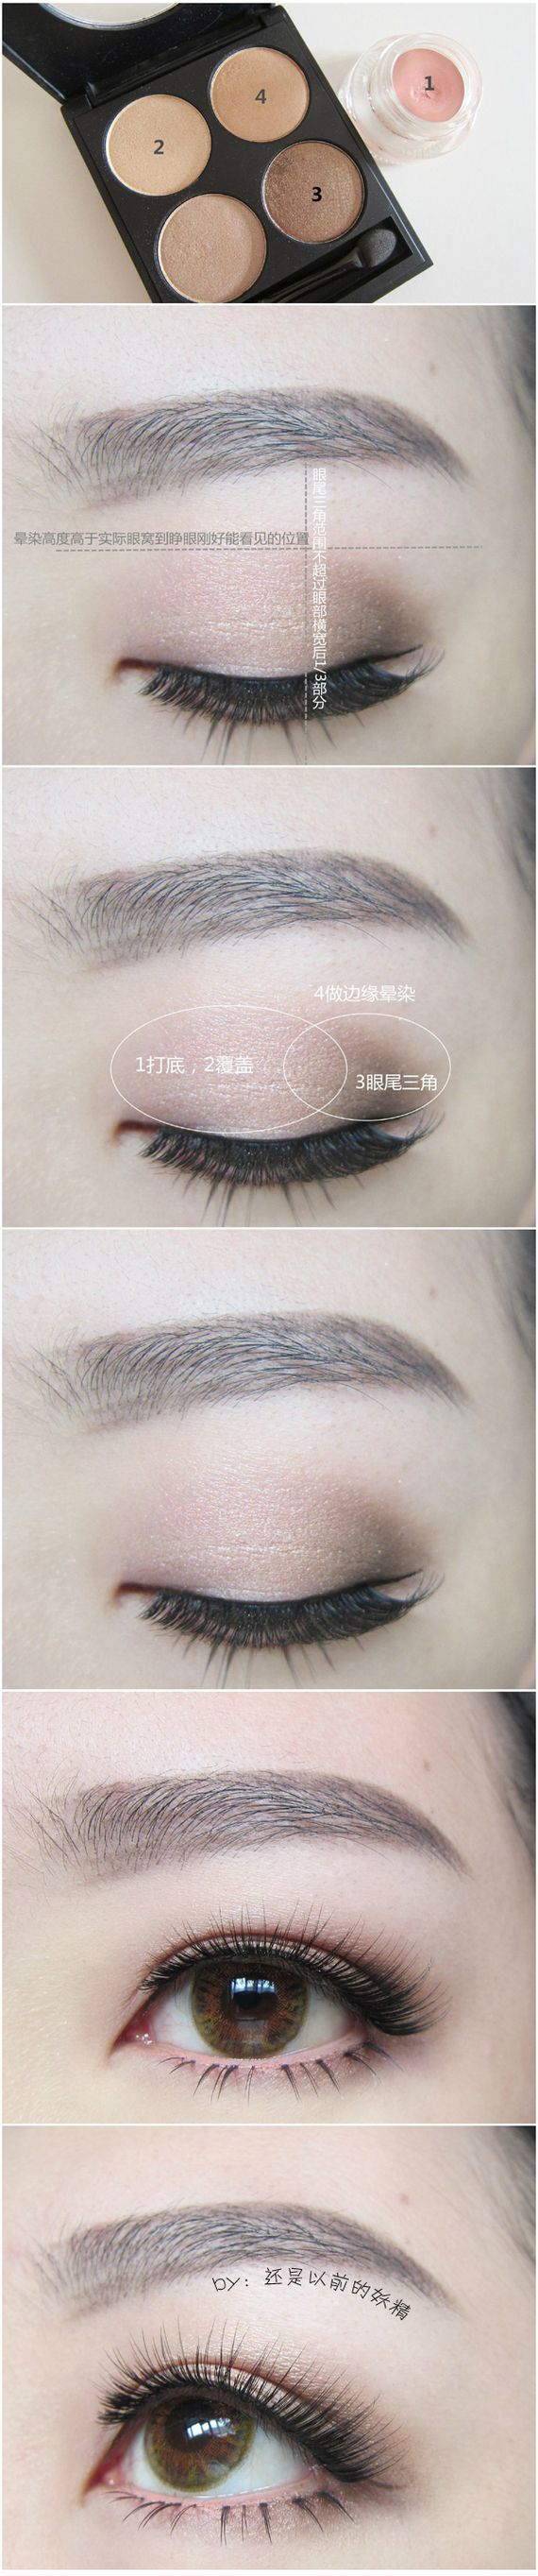 japanese make up tutorial www.AsianSkincare.Rocks                              …